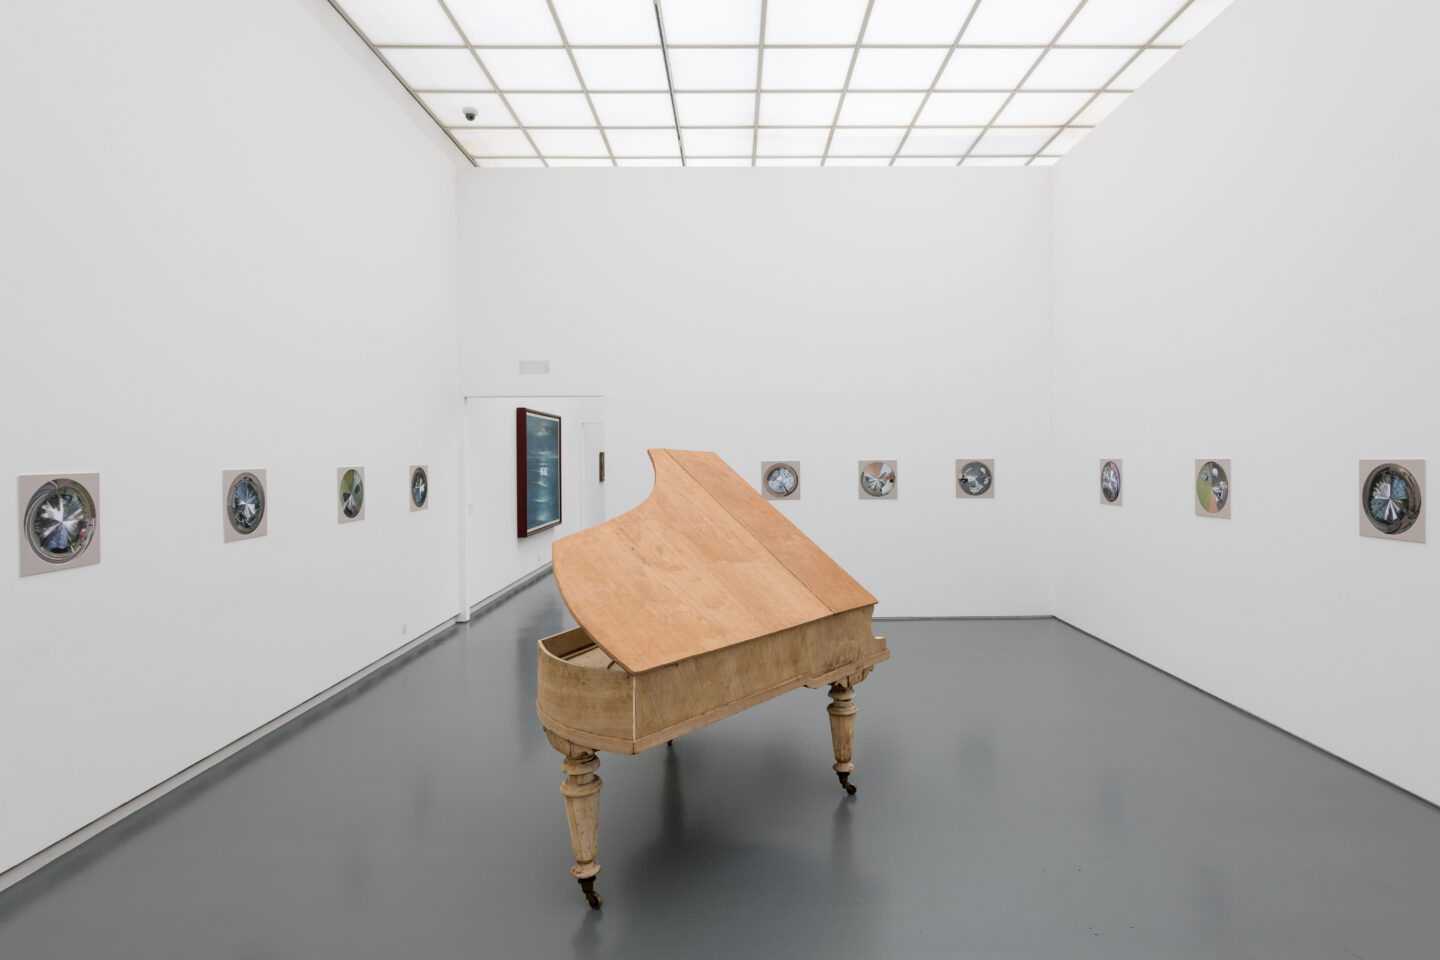 Exhibition View Dominic Michel Soloshow at Aargauer Kunsthaus, Aarau, 2020 / Photo: Ullmann Photography / Courtesy: the artist and Aargauer Kunsthaus